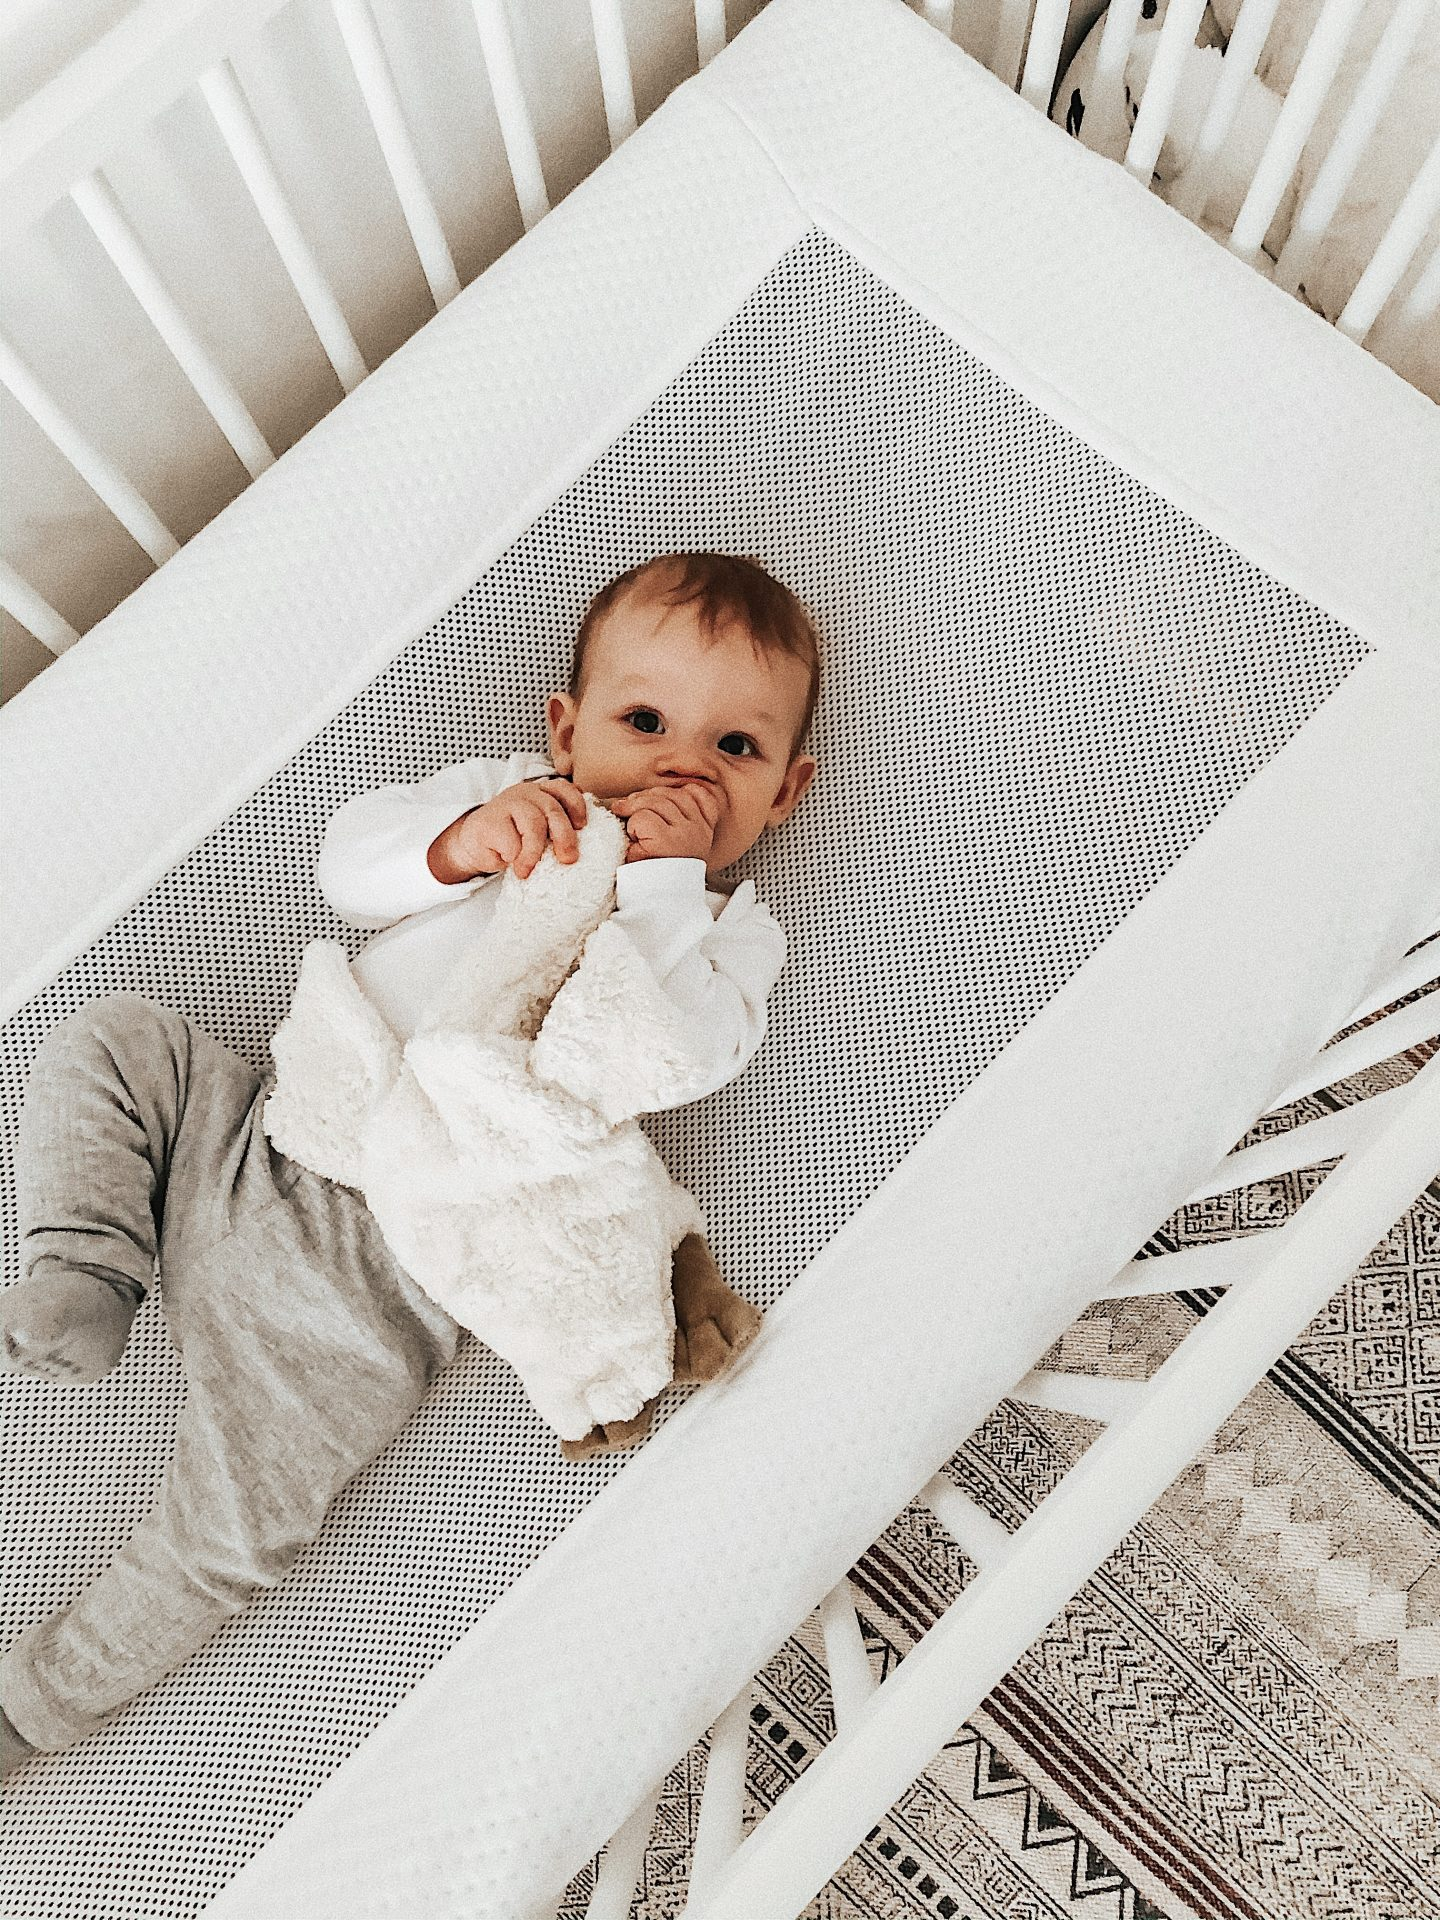 LullaMe Solina – Self-Rocking Baby Mattress